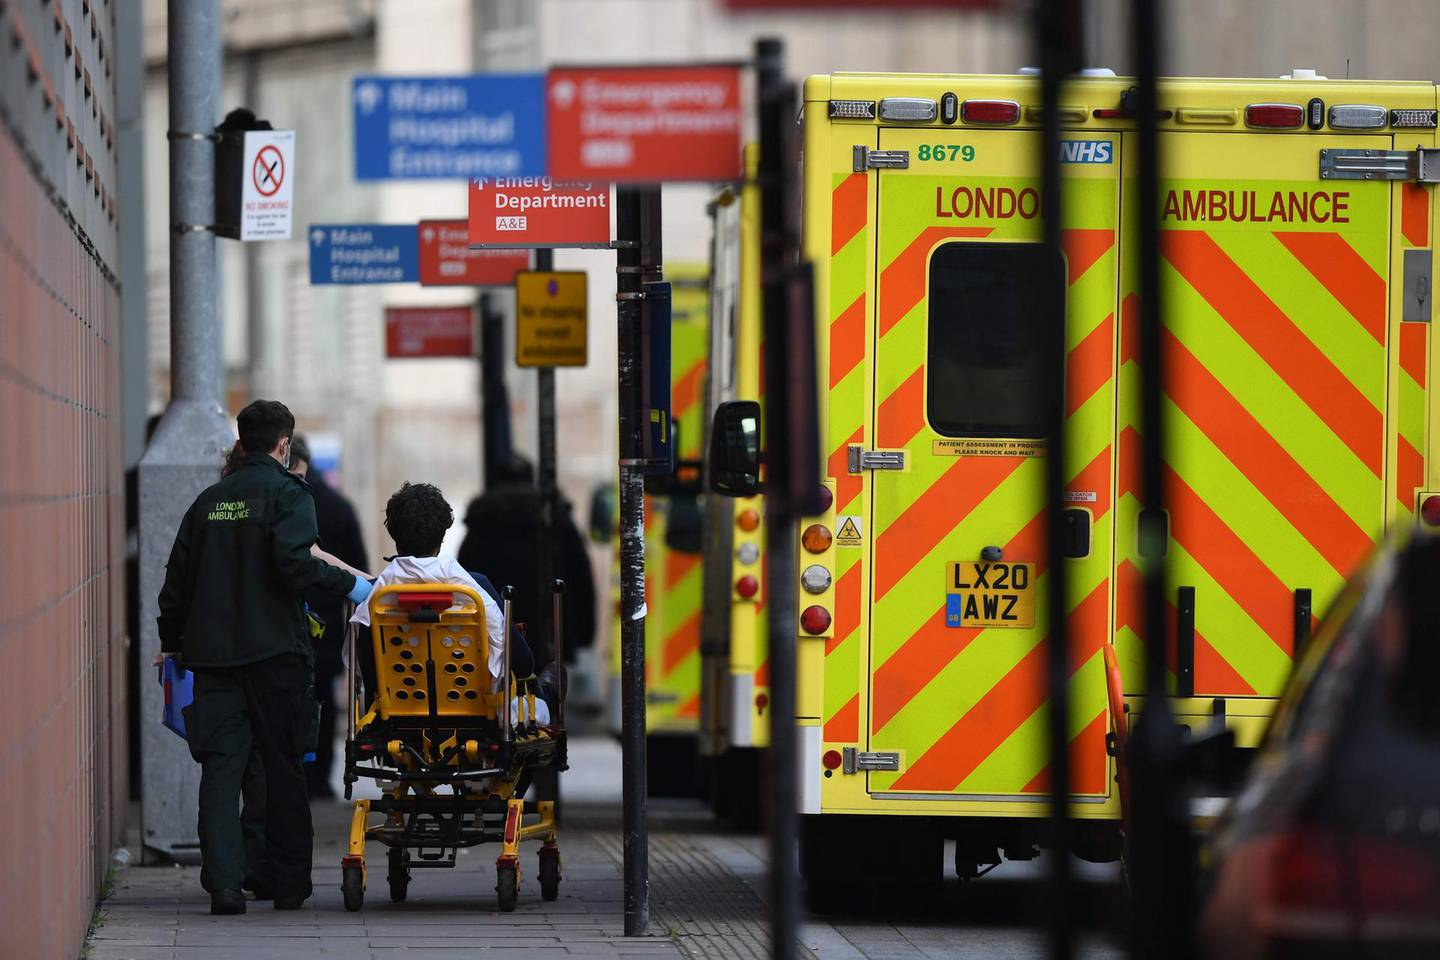 A patient is wheeled into the Royal London hospital in London on January 12, 2021 as surging cases of the novel coronavirus are placing health services under increasing pressure.  / AFP / DANIEL LEAL-OLIVAS